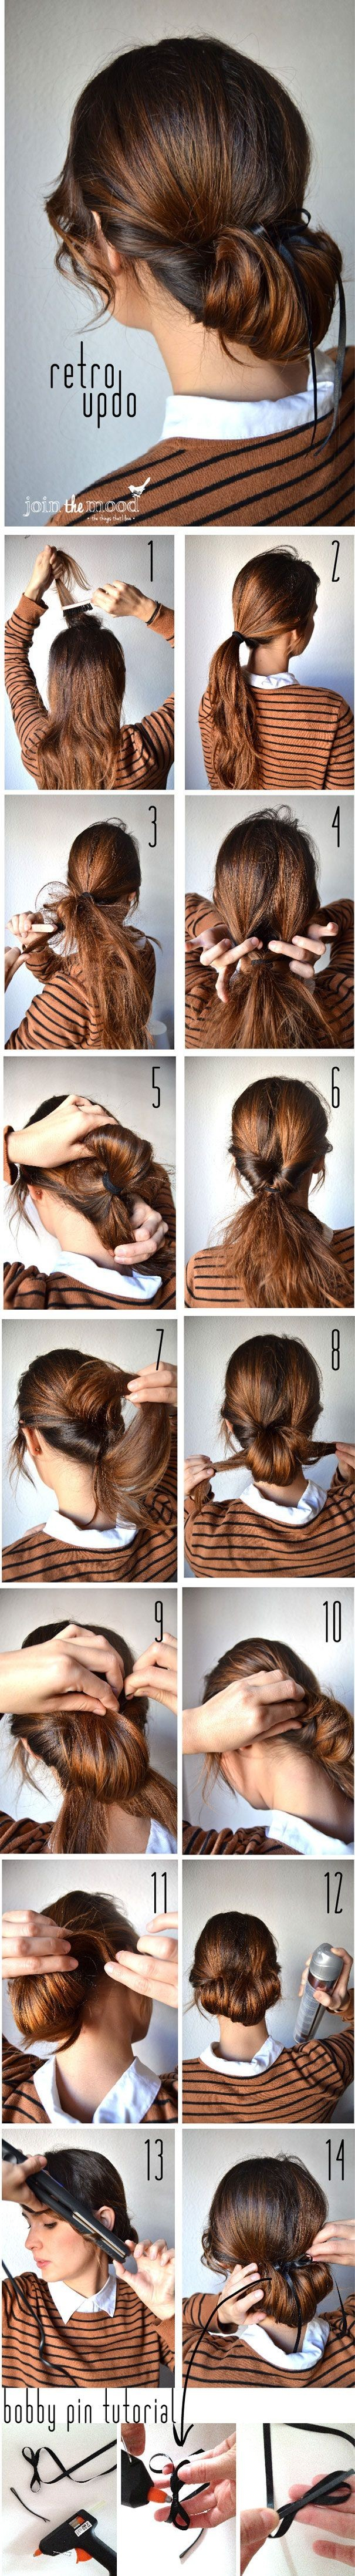 Retro Updos Tutorial: Step by Step Hairstyles for Long Hair